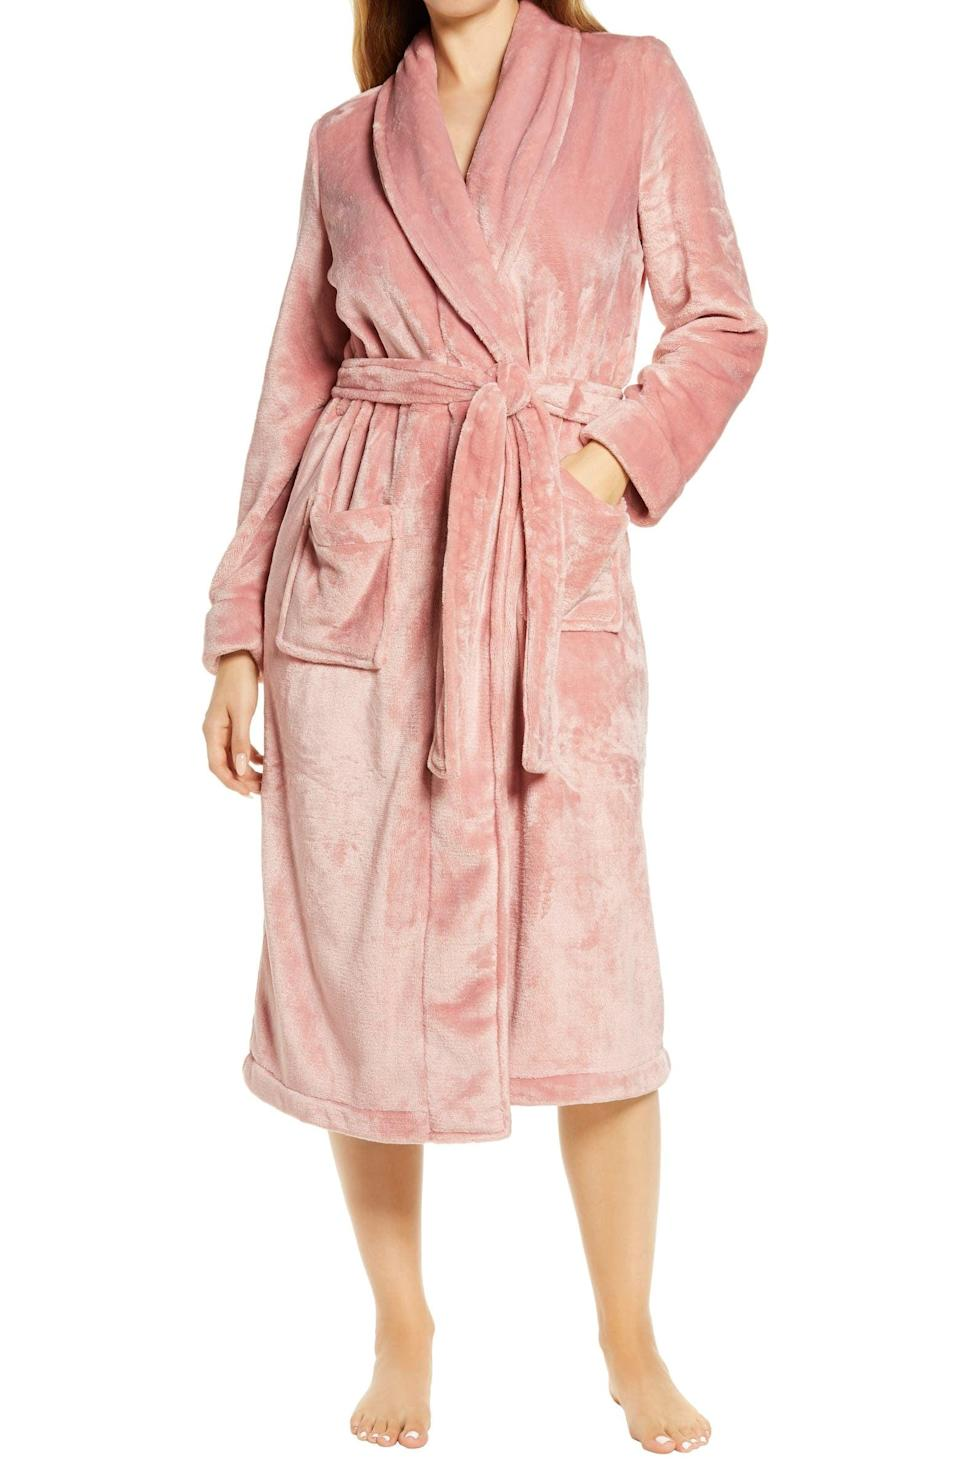 <p>Transport them to luxurious hotel with this stylish and plush <span>Nordstrom Bliss Plush Robe</span> ($69). The high-shine fleece is not only ultra-comfortable but looks like a million bucks! It comes in pink, white, and grey.</p>